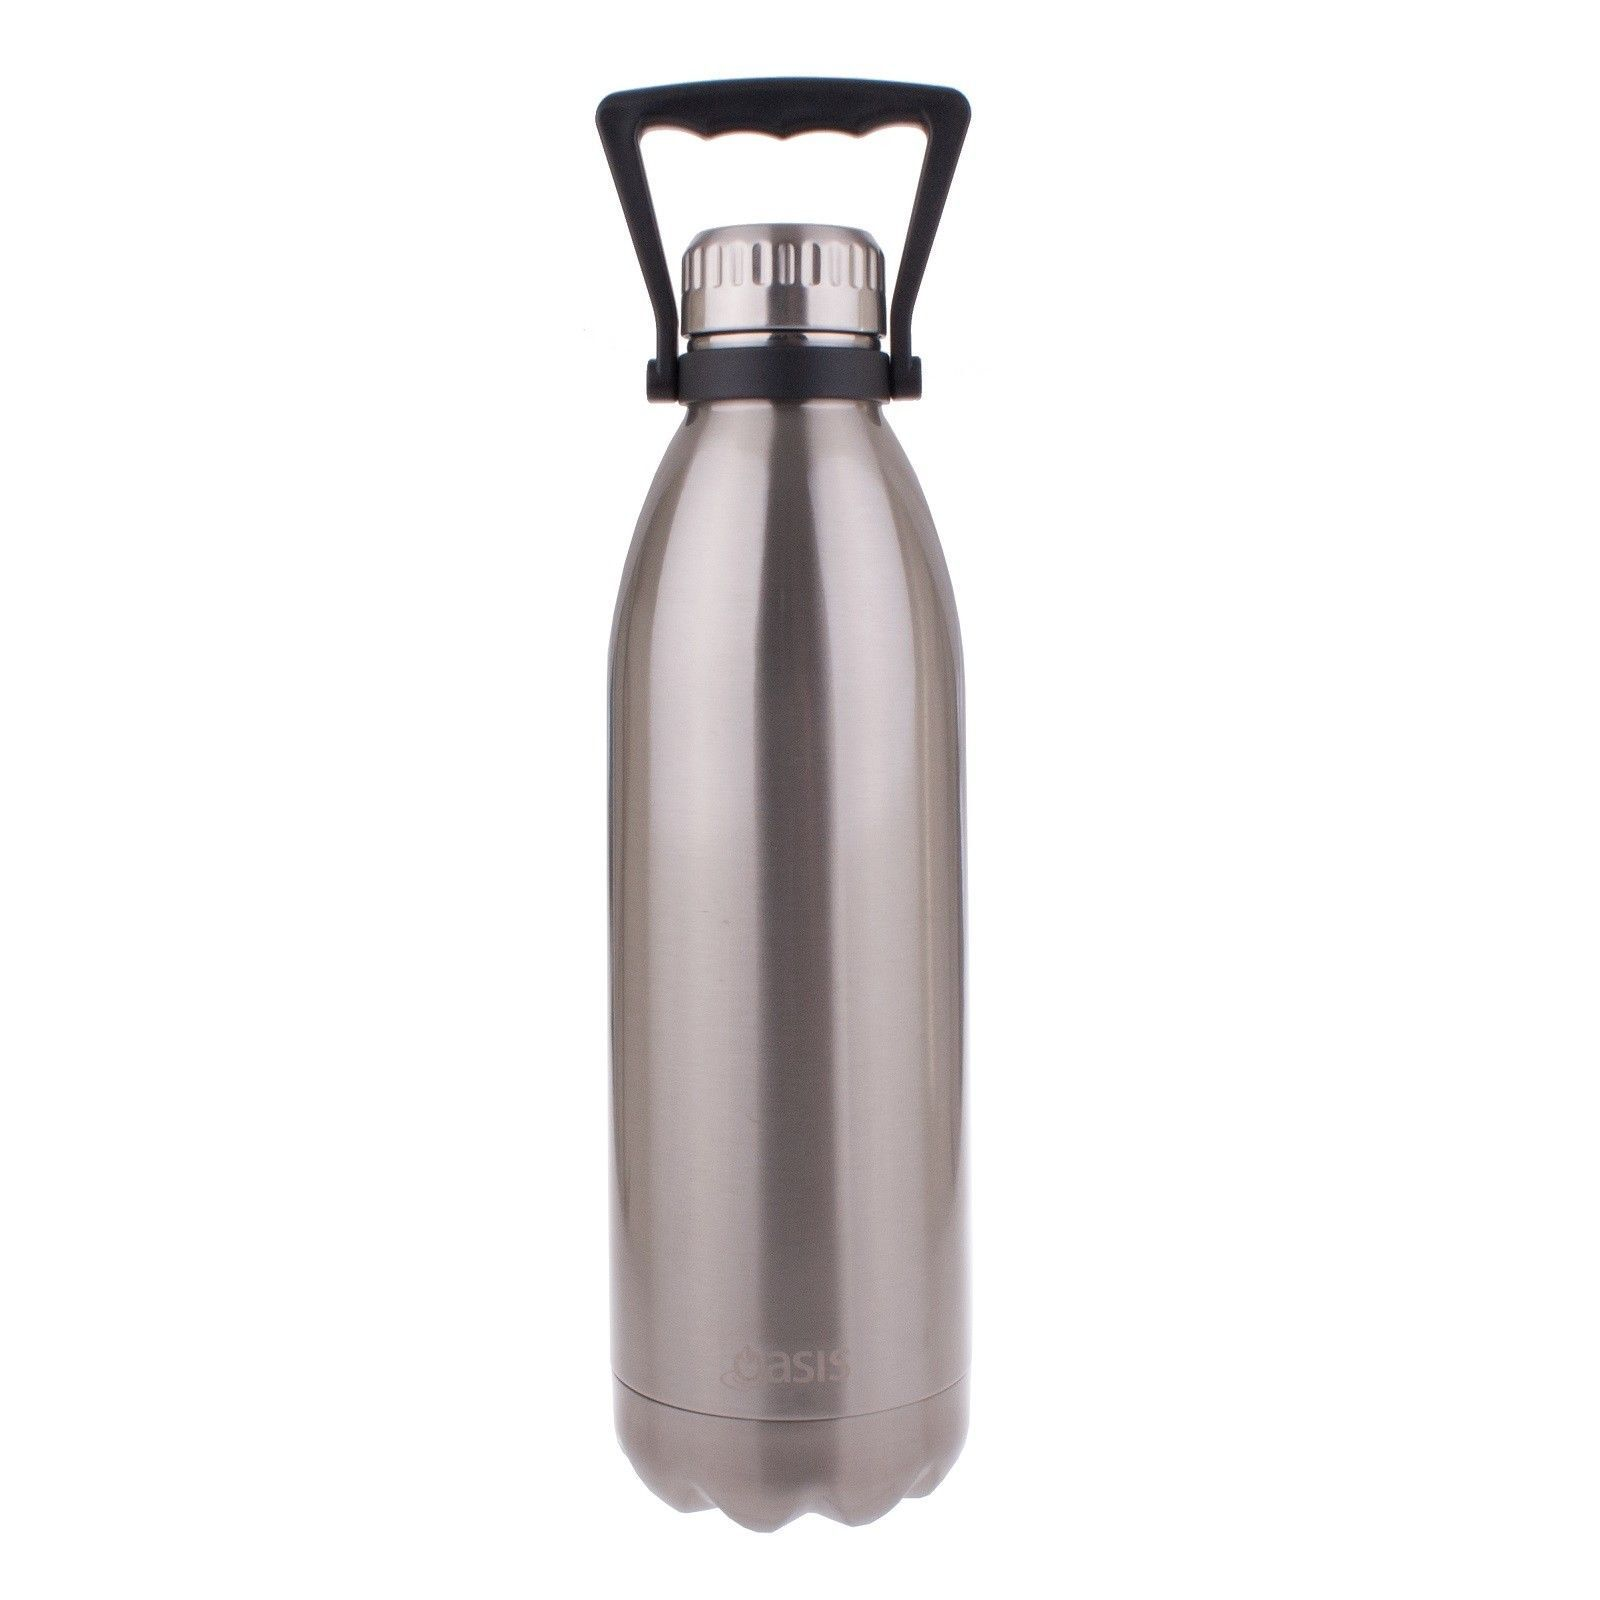 1L Jumbo Stainless Steel Water Drink Bottle Insulated Double Walled Gym Outdoor